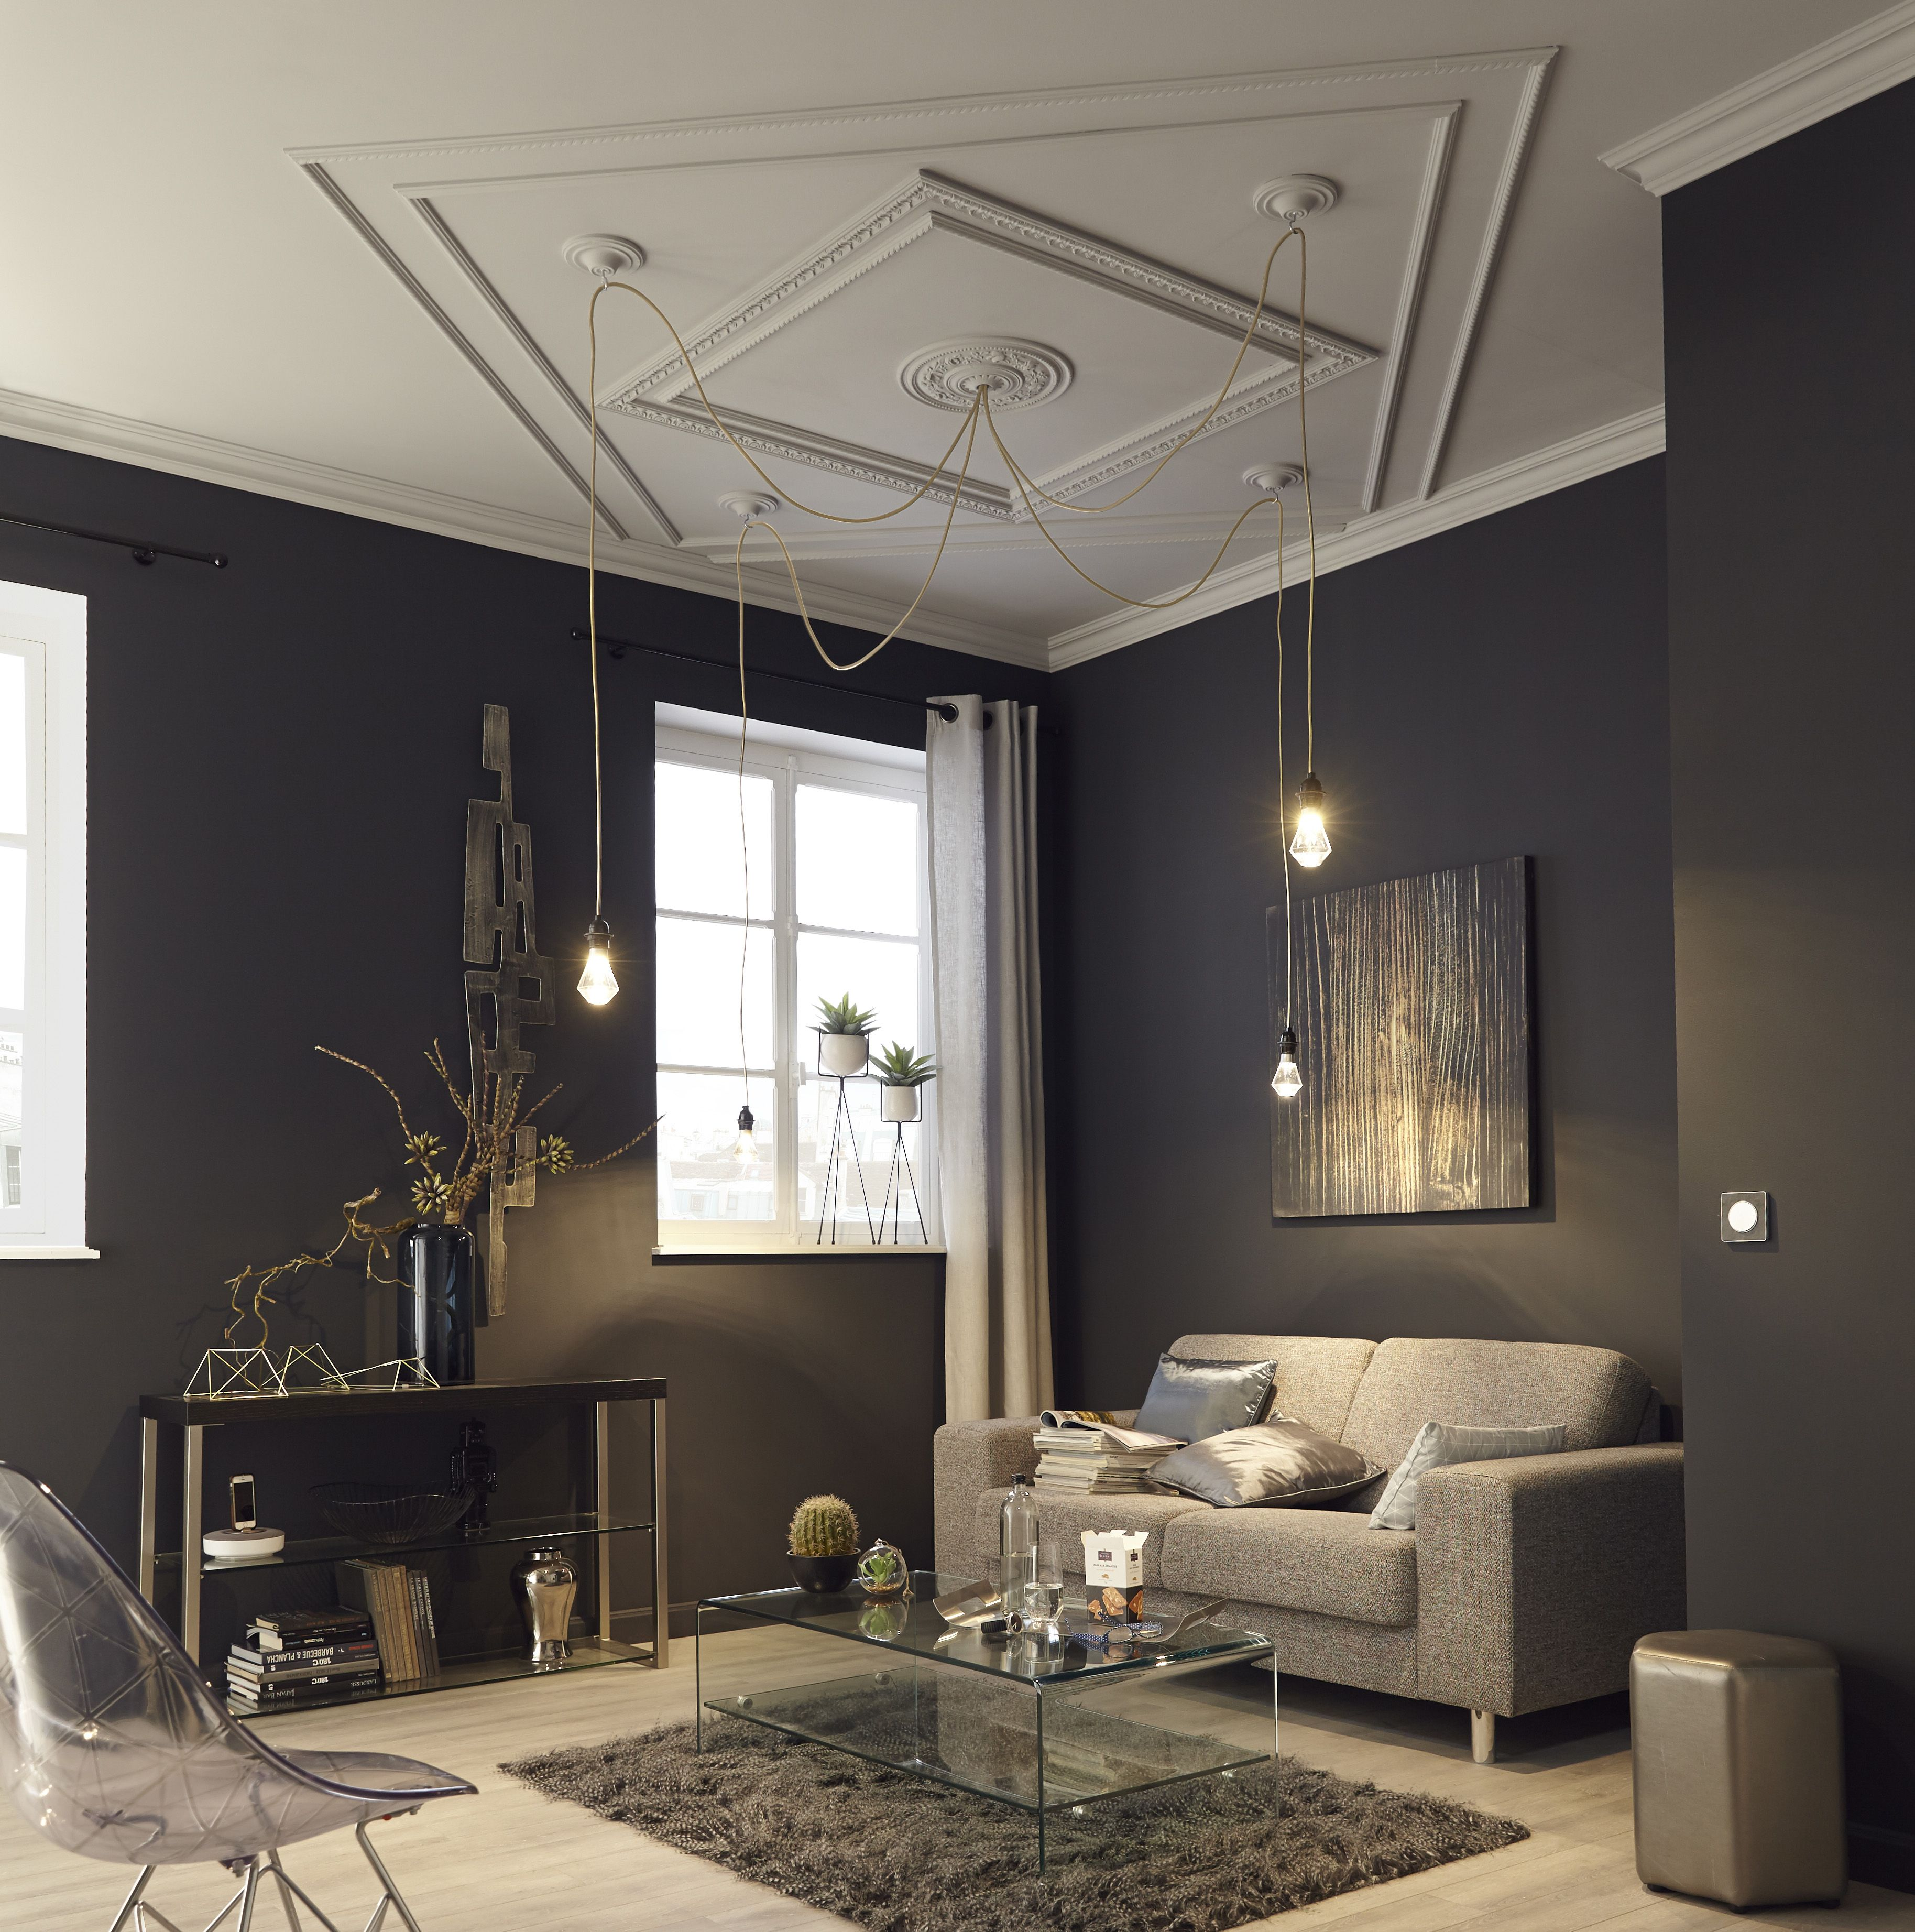 pingl par m sur salons am nagement d co pinterest plafond moulure plafond. Black Bedroom Furniture Sets. Home Design Ideas